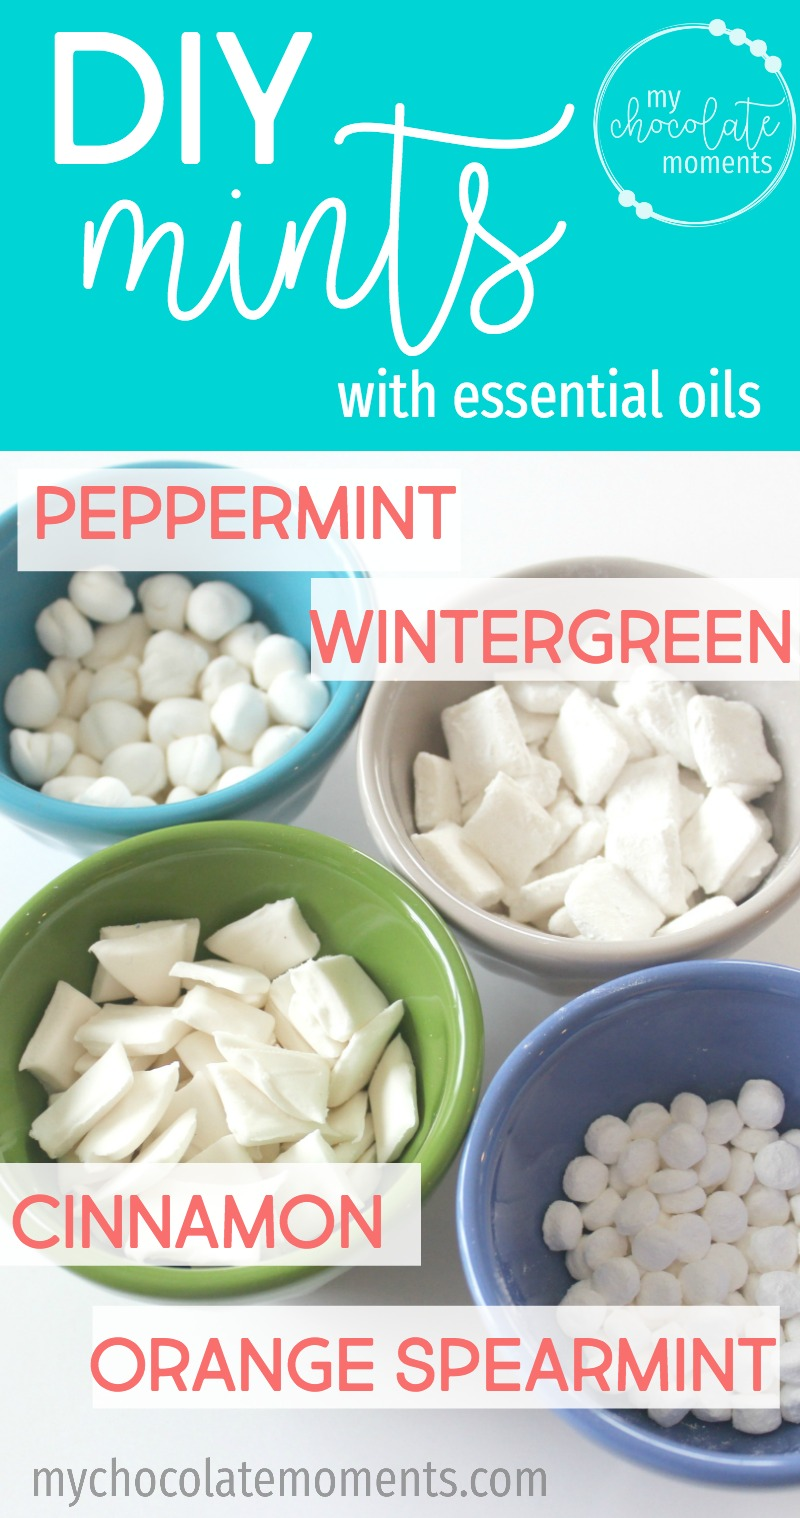 DIY mints with essential oils